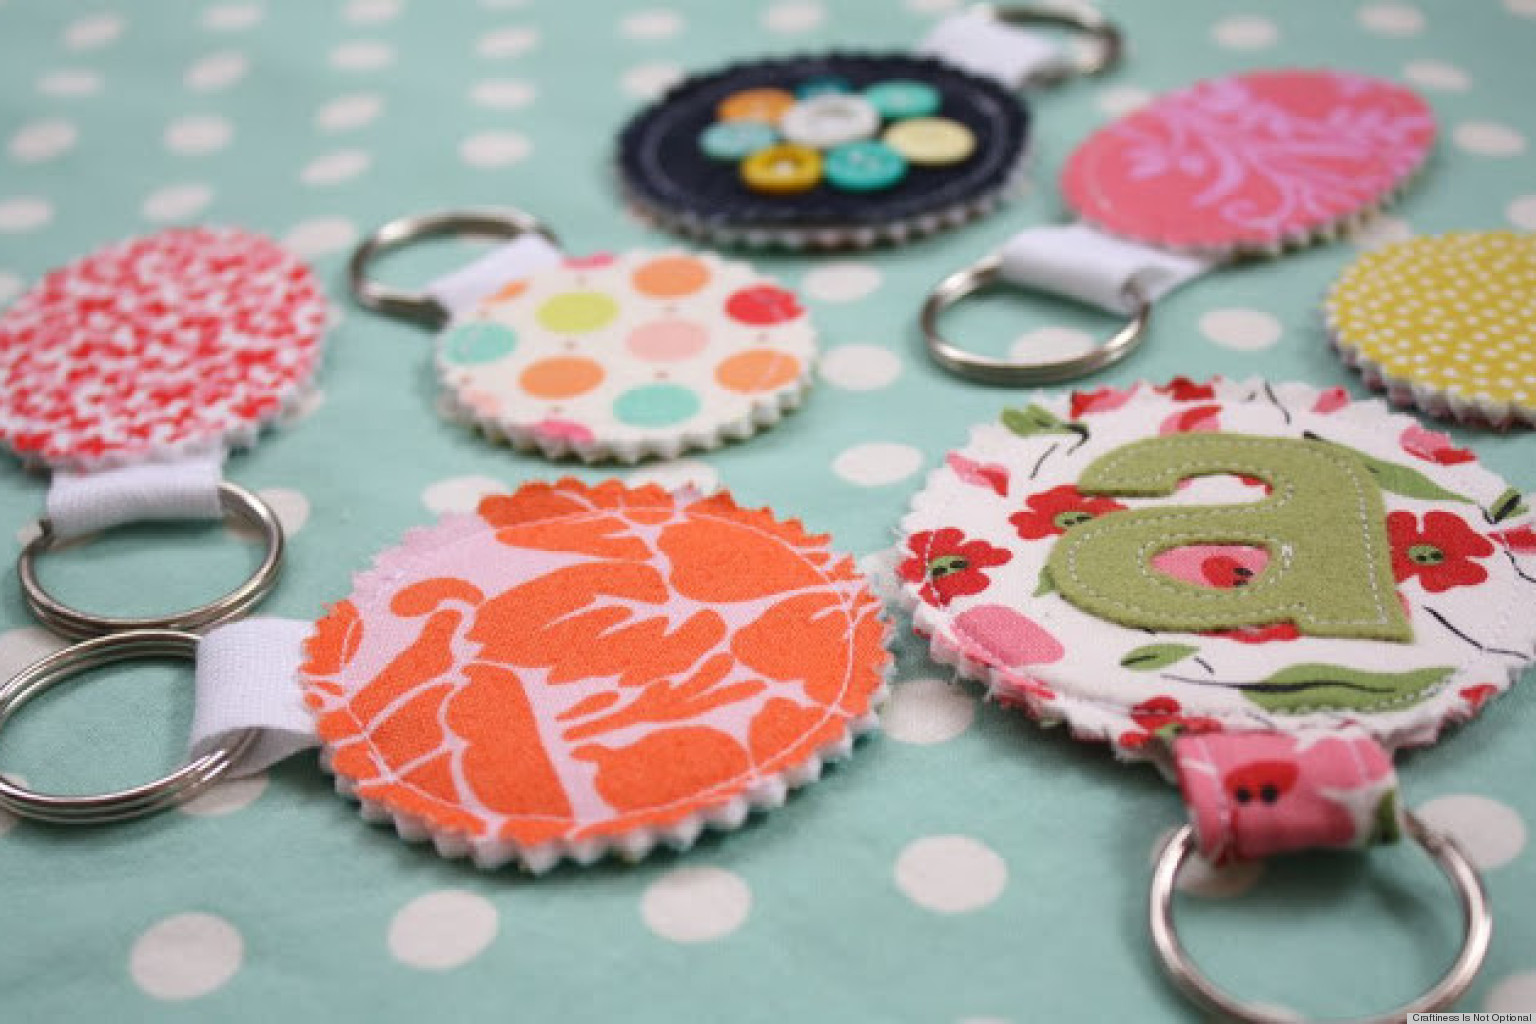 Homemade gift ideas fabric scrap keychains perfect for for Easy gift ideas